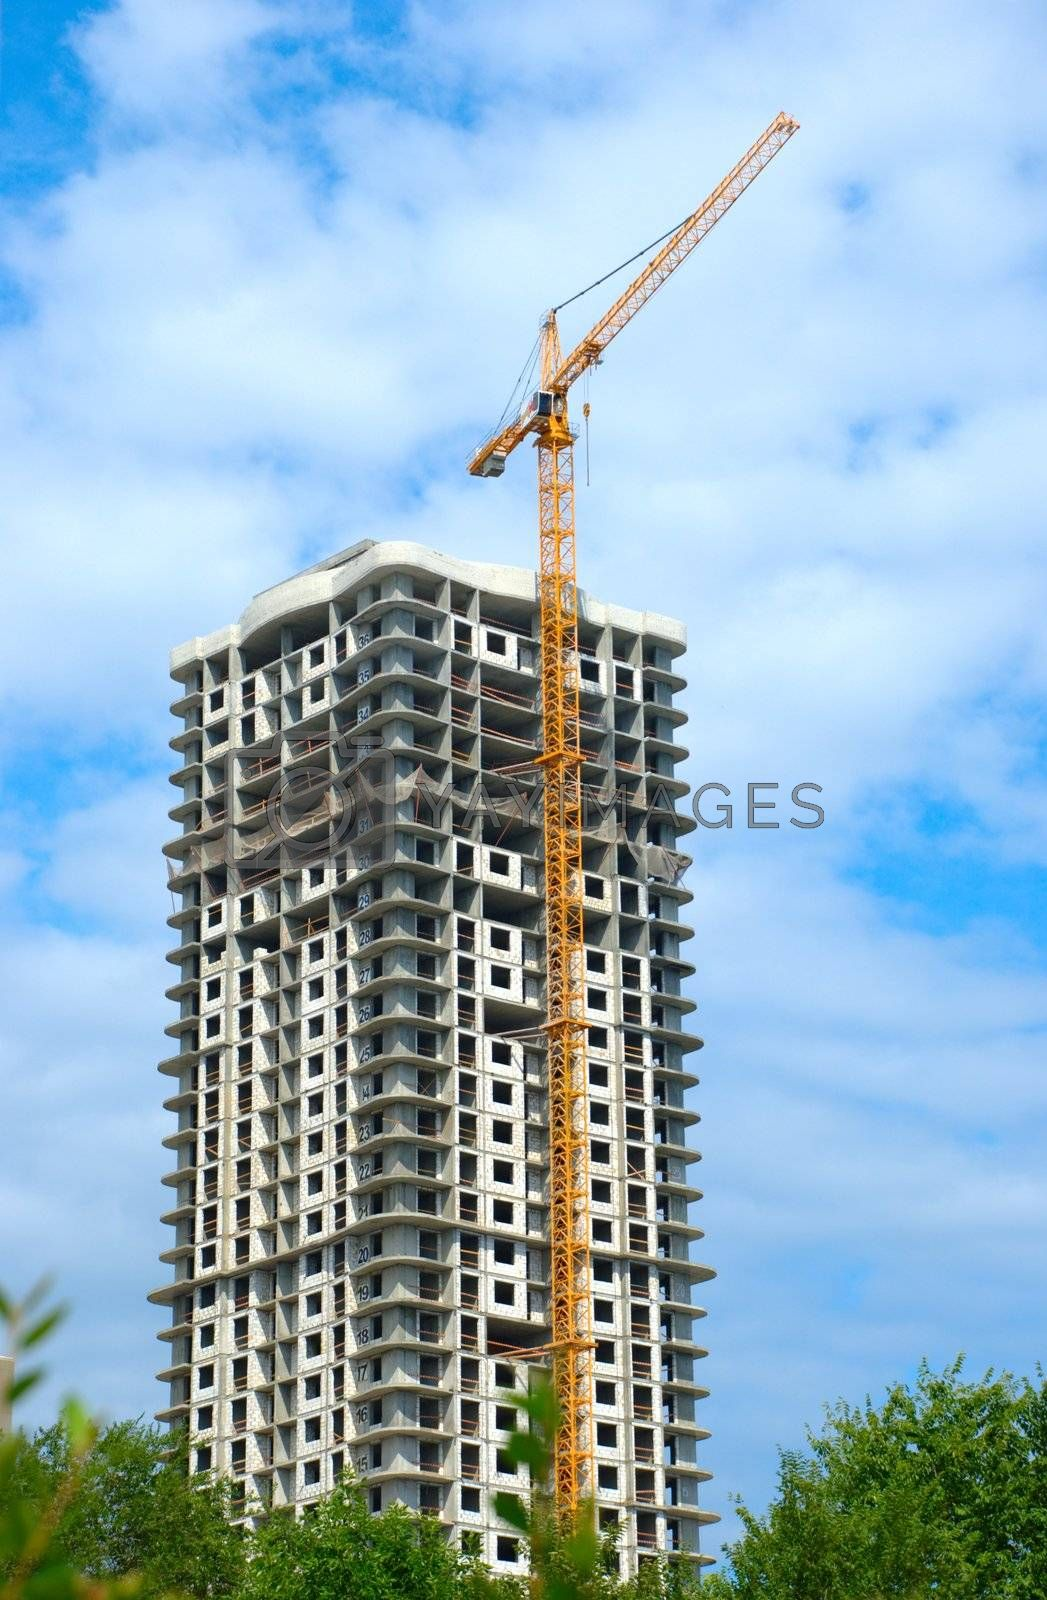 Royalty free image of Construction of multi-dwelling buildings by Light